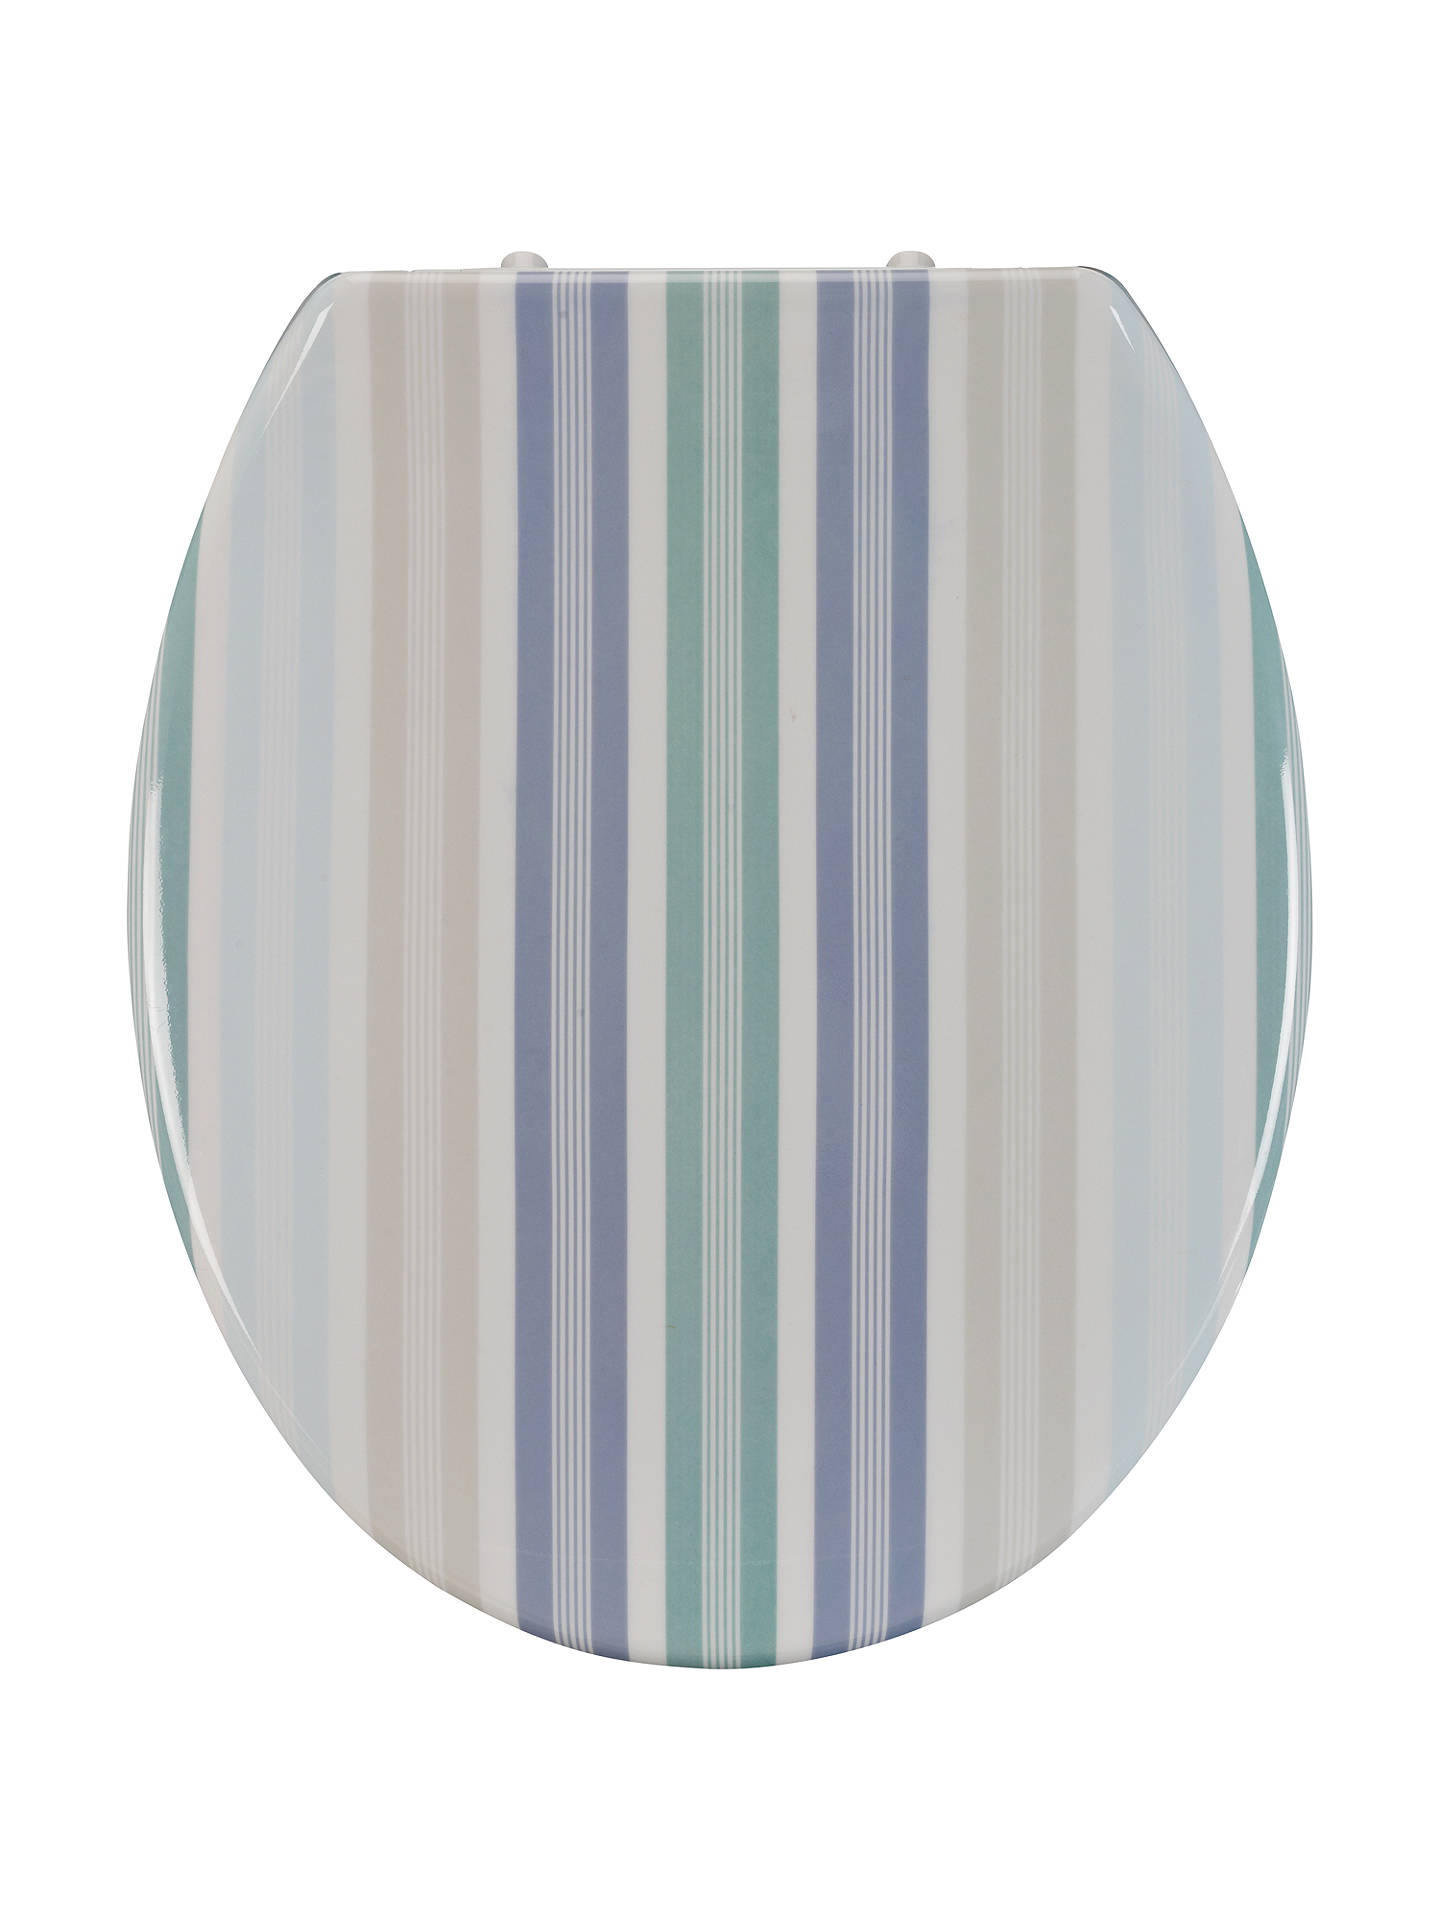 Groovy John Lewis Bathroom Pier Stripe Toilet Seat Blue Multi At Gamerscity Chair Design For Home Gamerscityorg